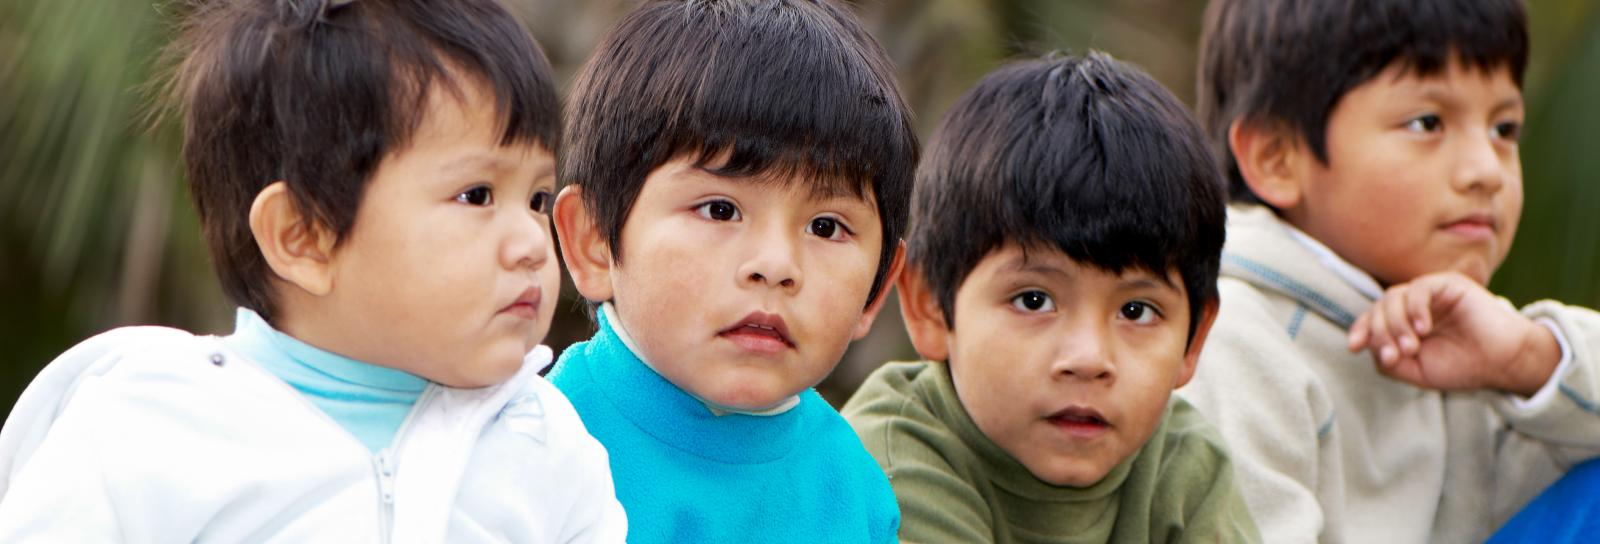 four young Latino brothers sitting in a row (toddler to elementary age)